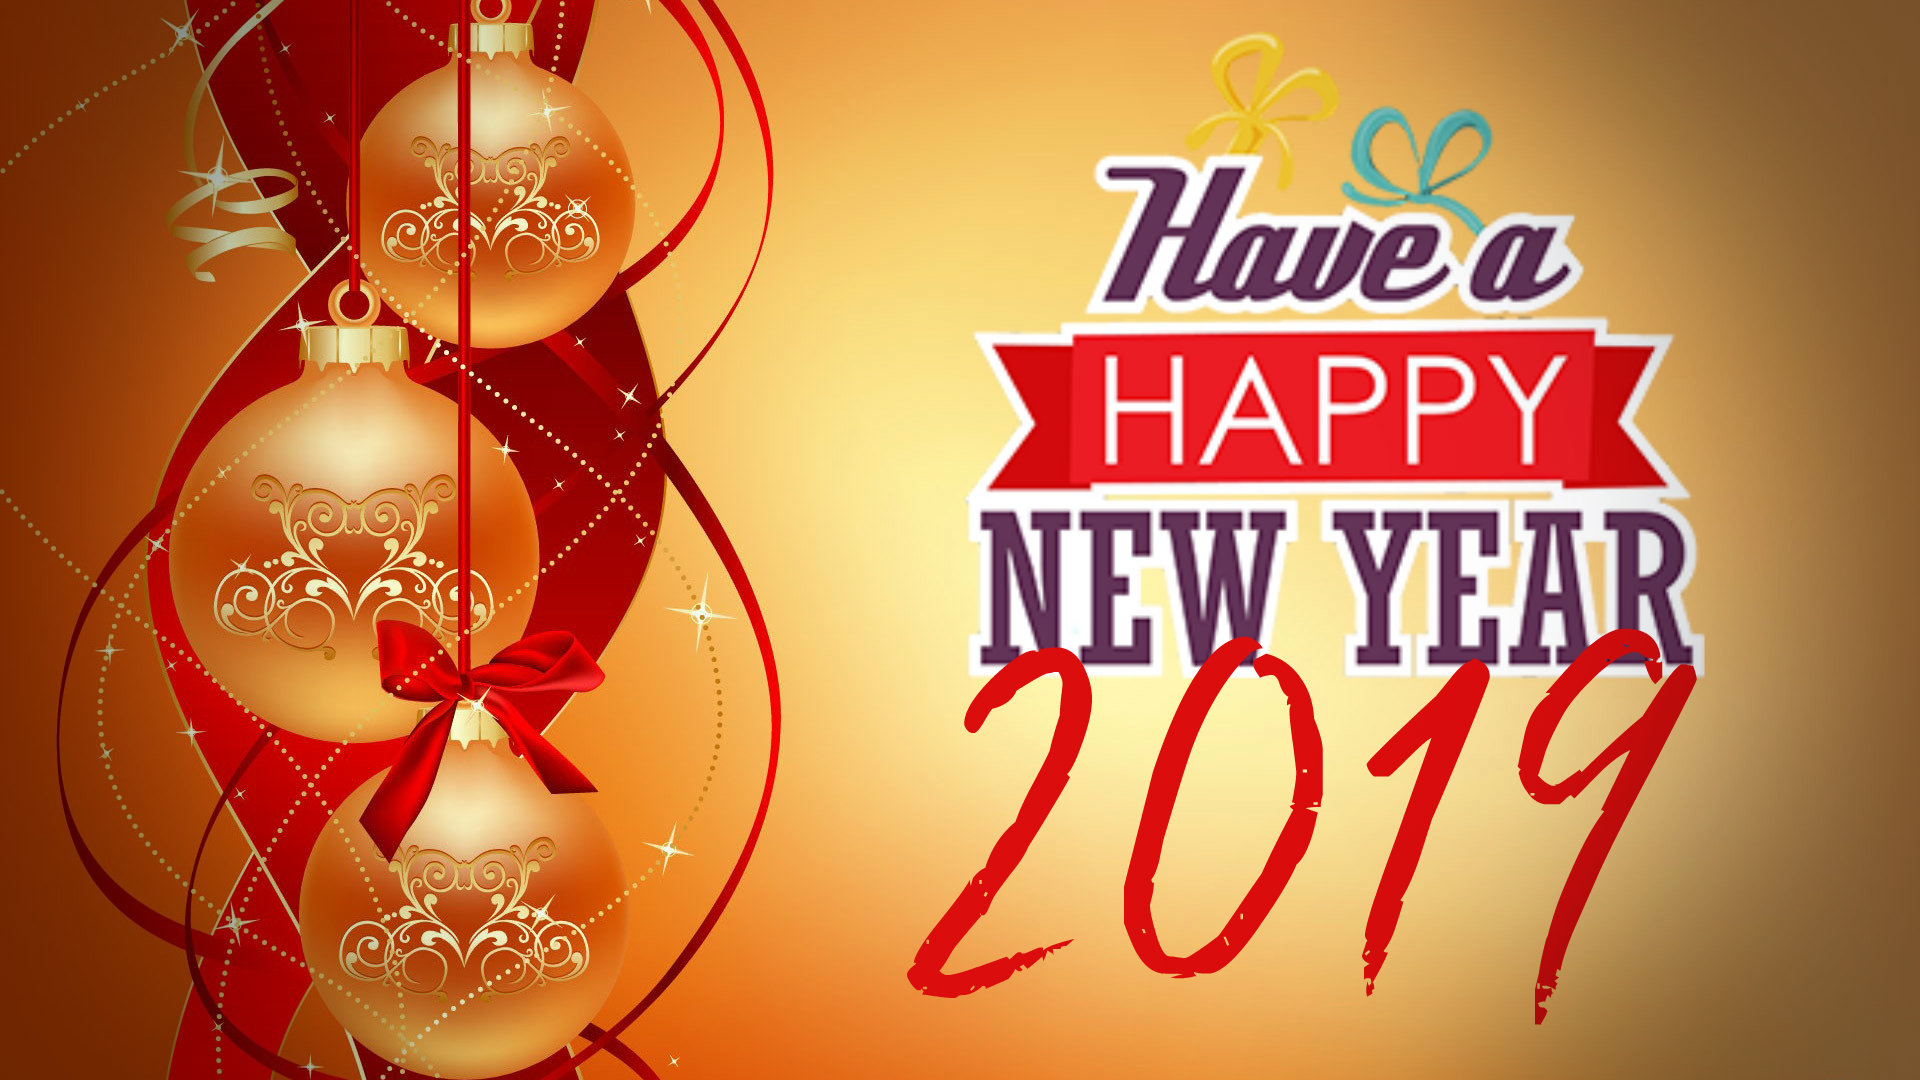 Happy New Year 2019 Wallpapers HD